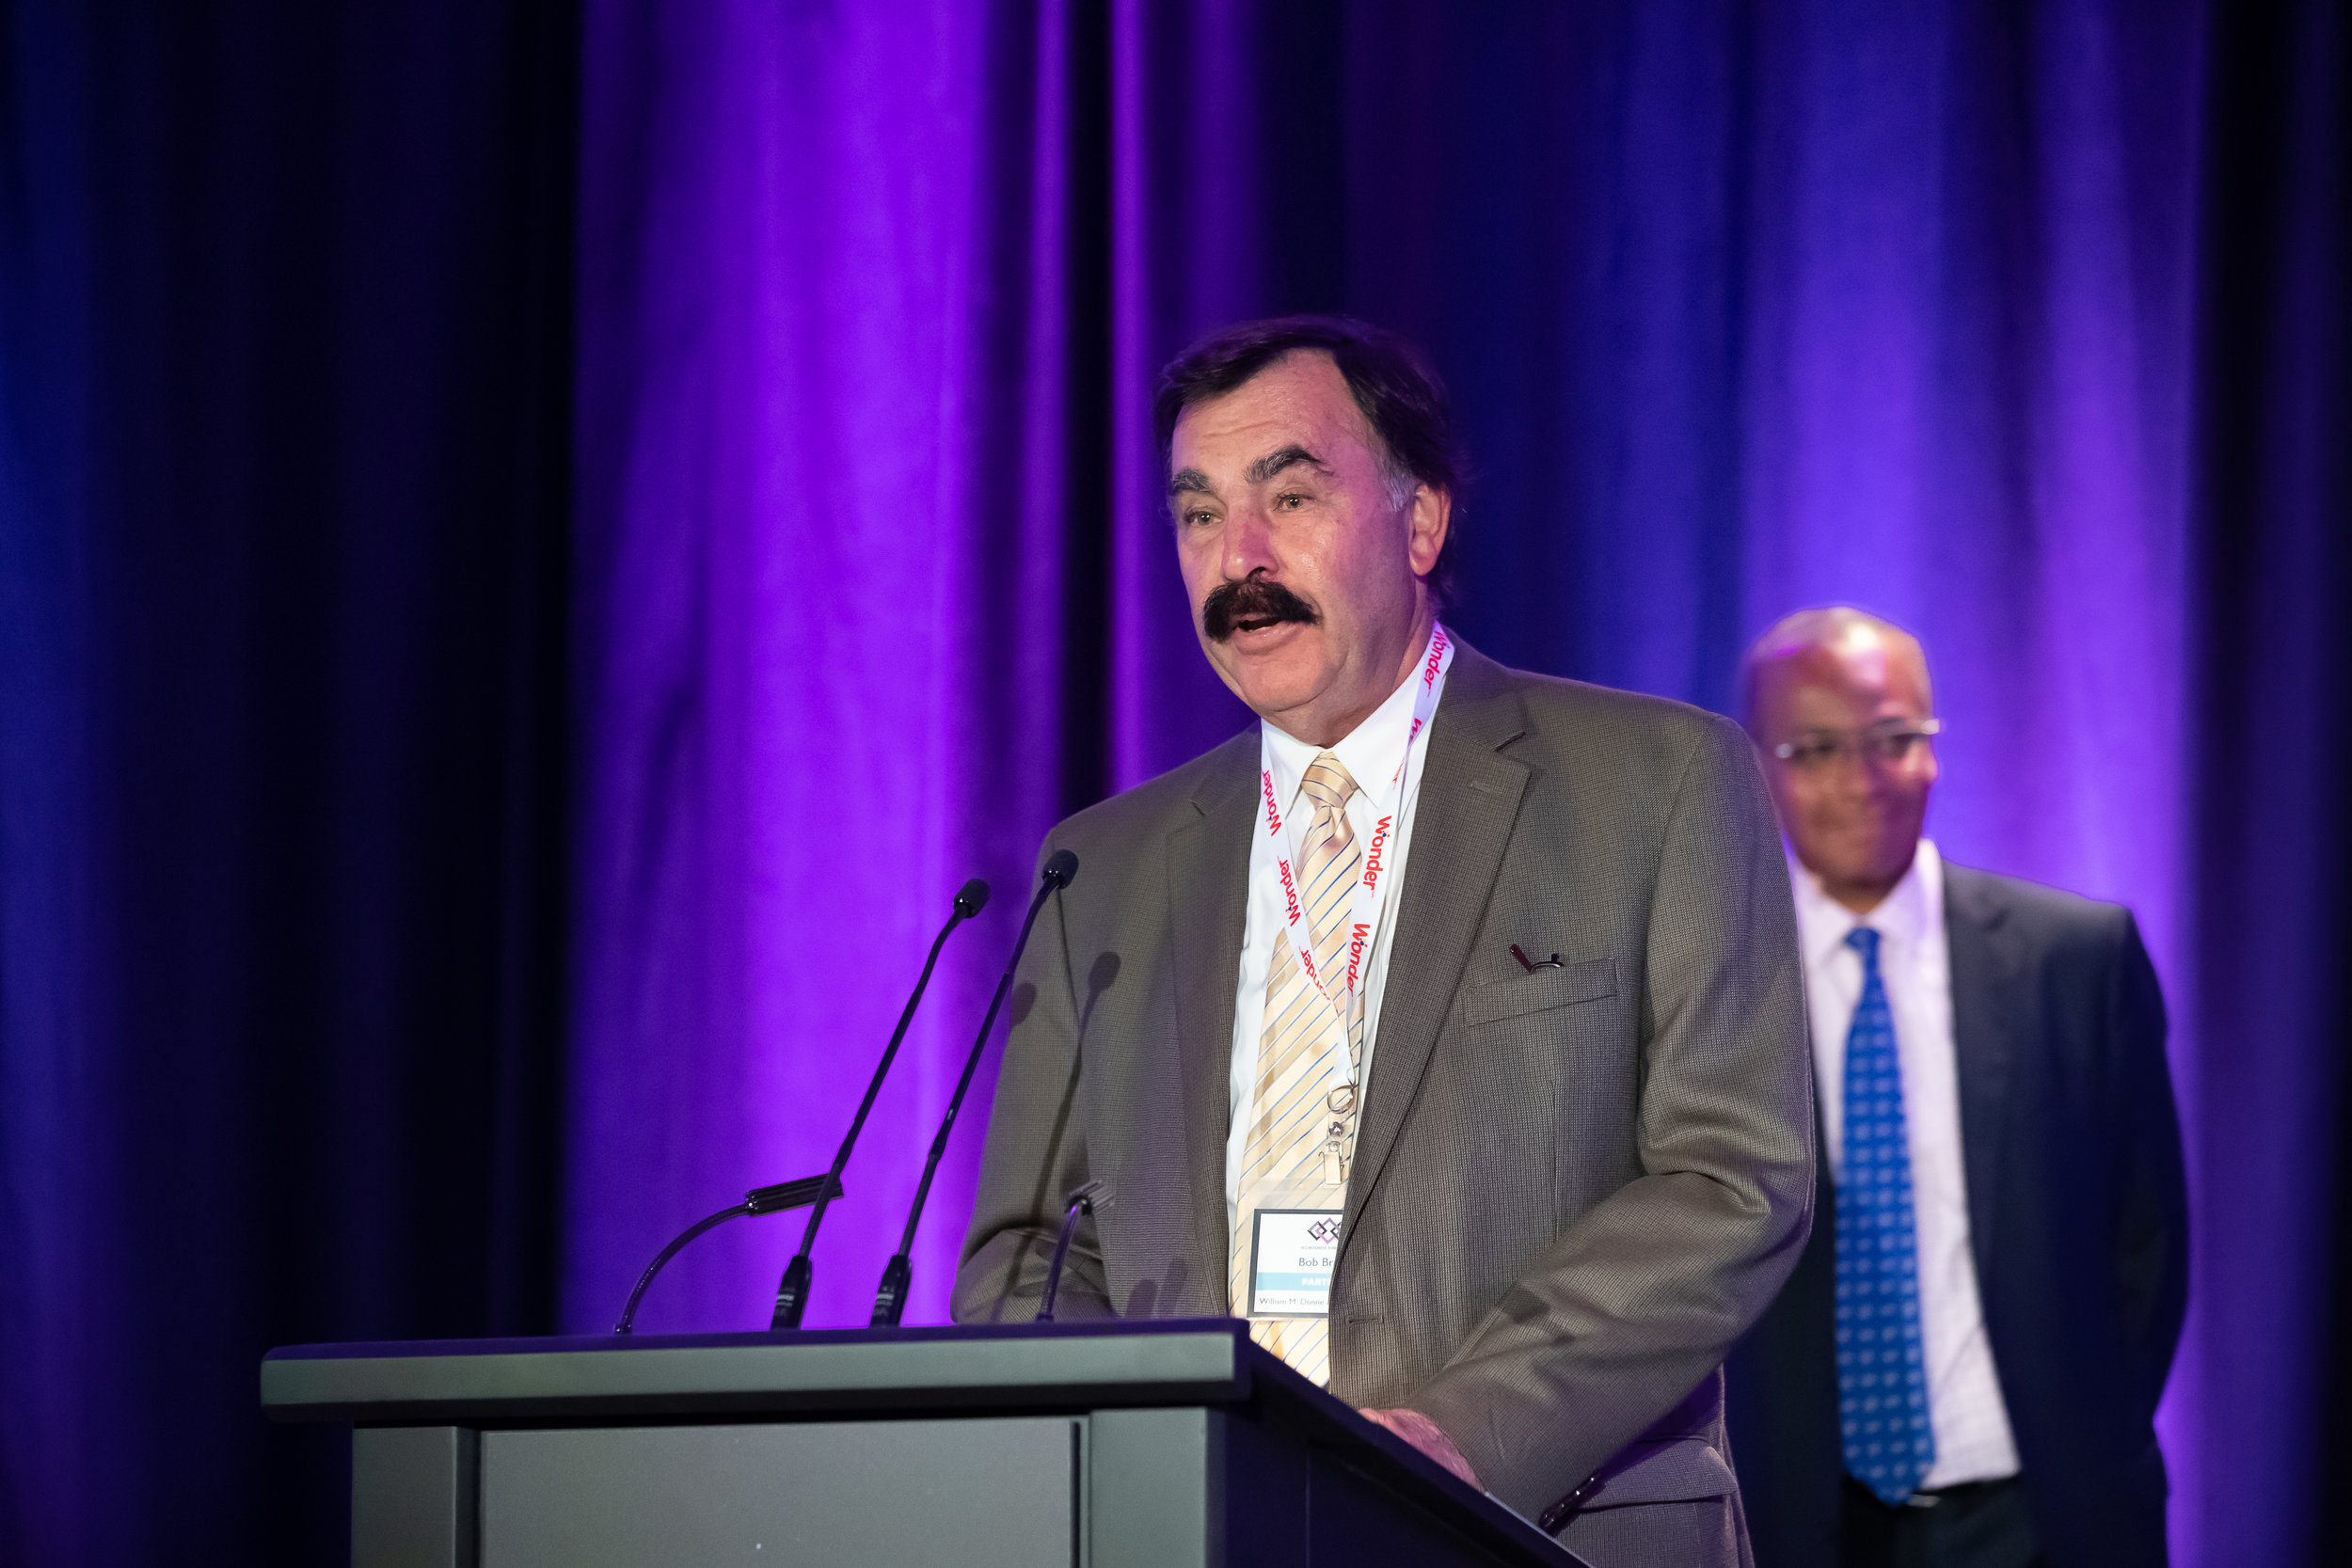 Bob Brema (William M. Dunne & Associates) accepts award on behalf of Chapman's Ice Cream